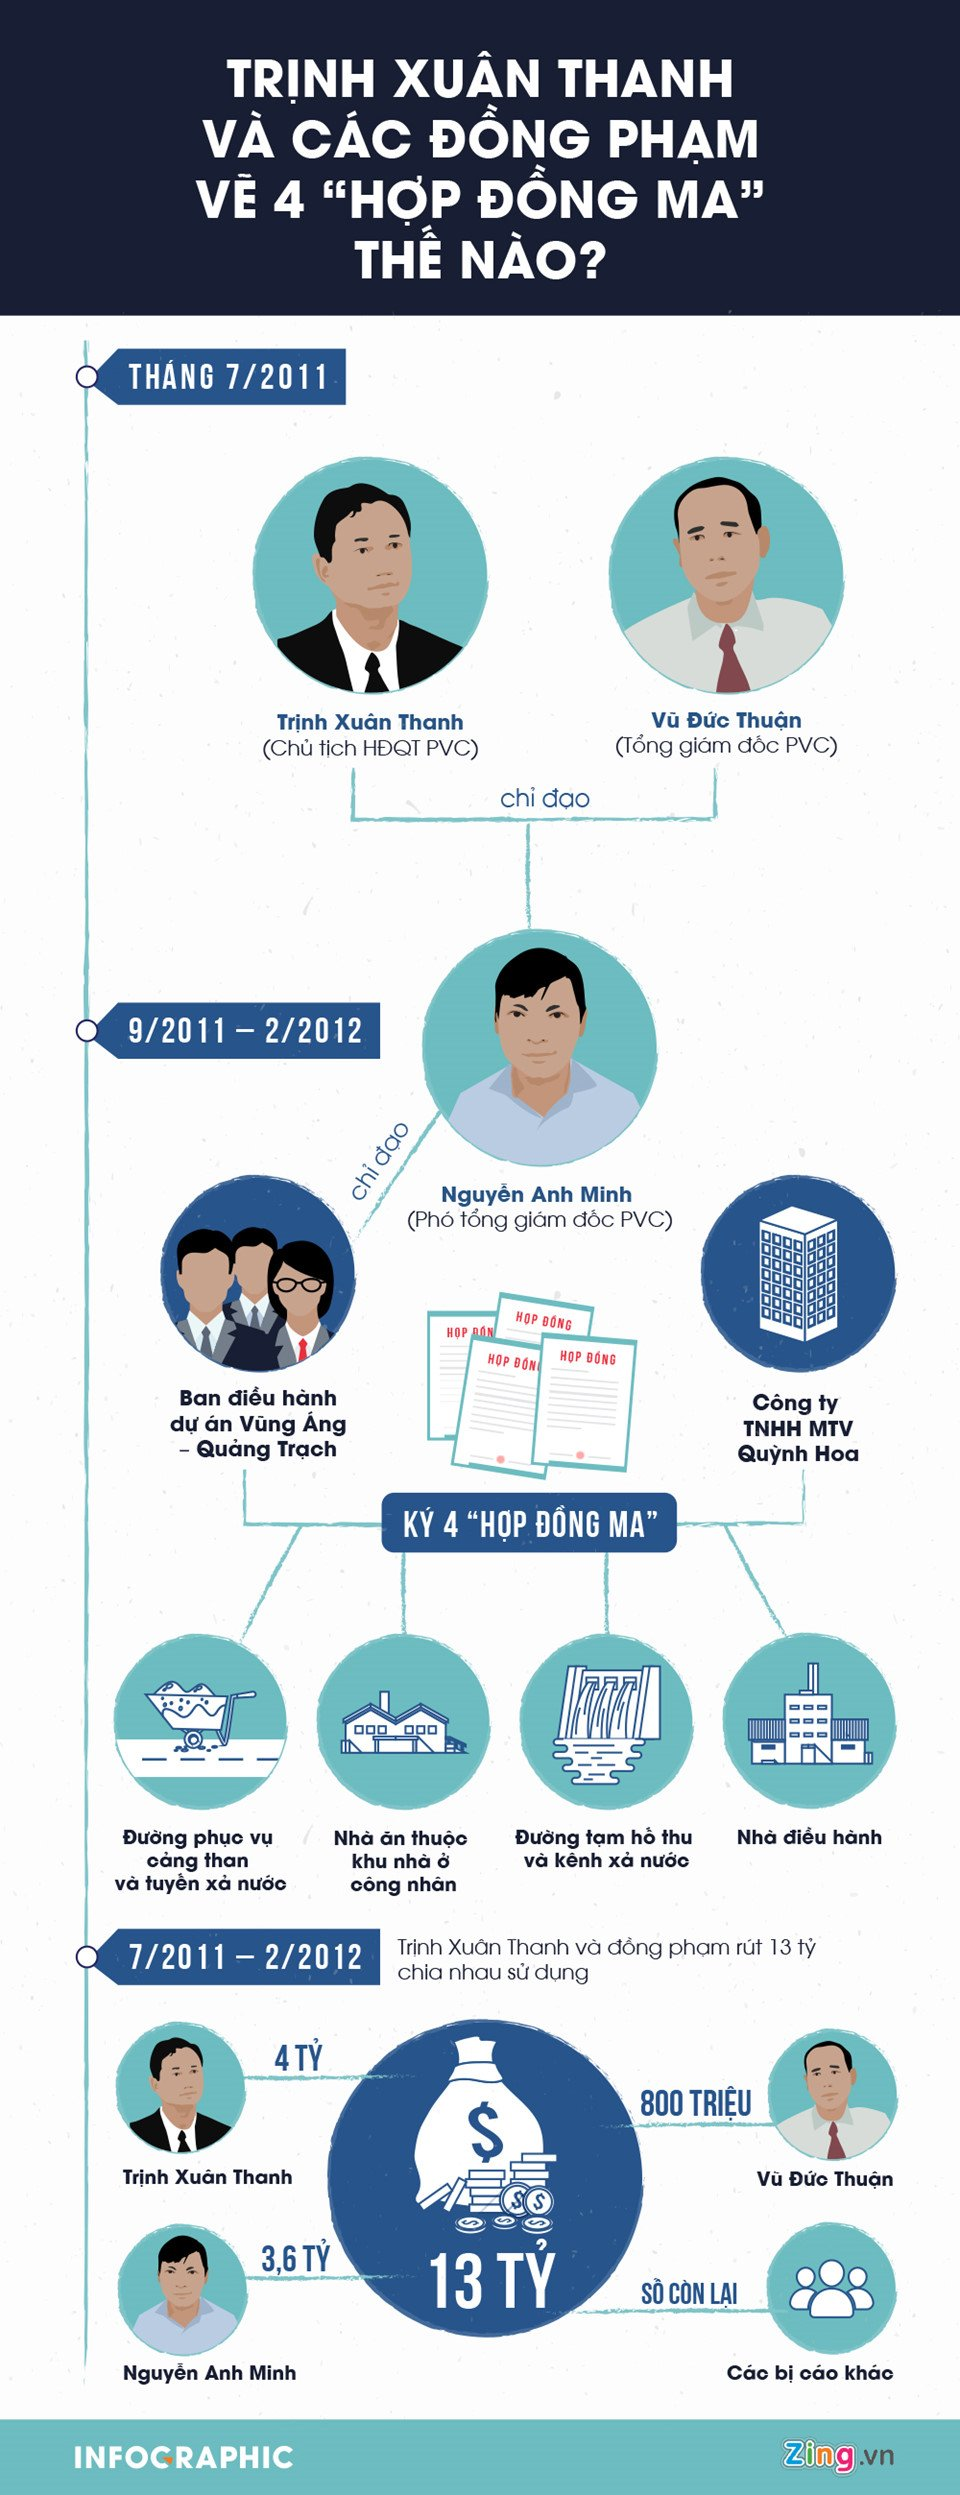 Infographic: Trinh Xuan Thanh va dong pham 've 4 hop dong ma' an chia 13 ty dong the nao? hinh anh 1